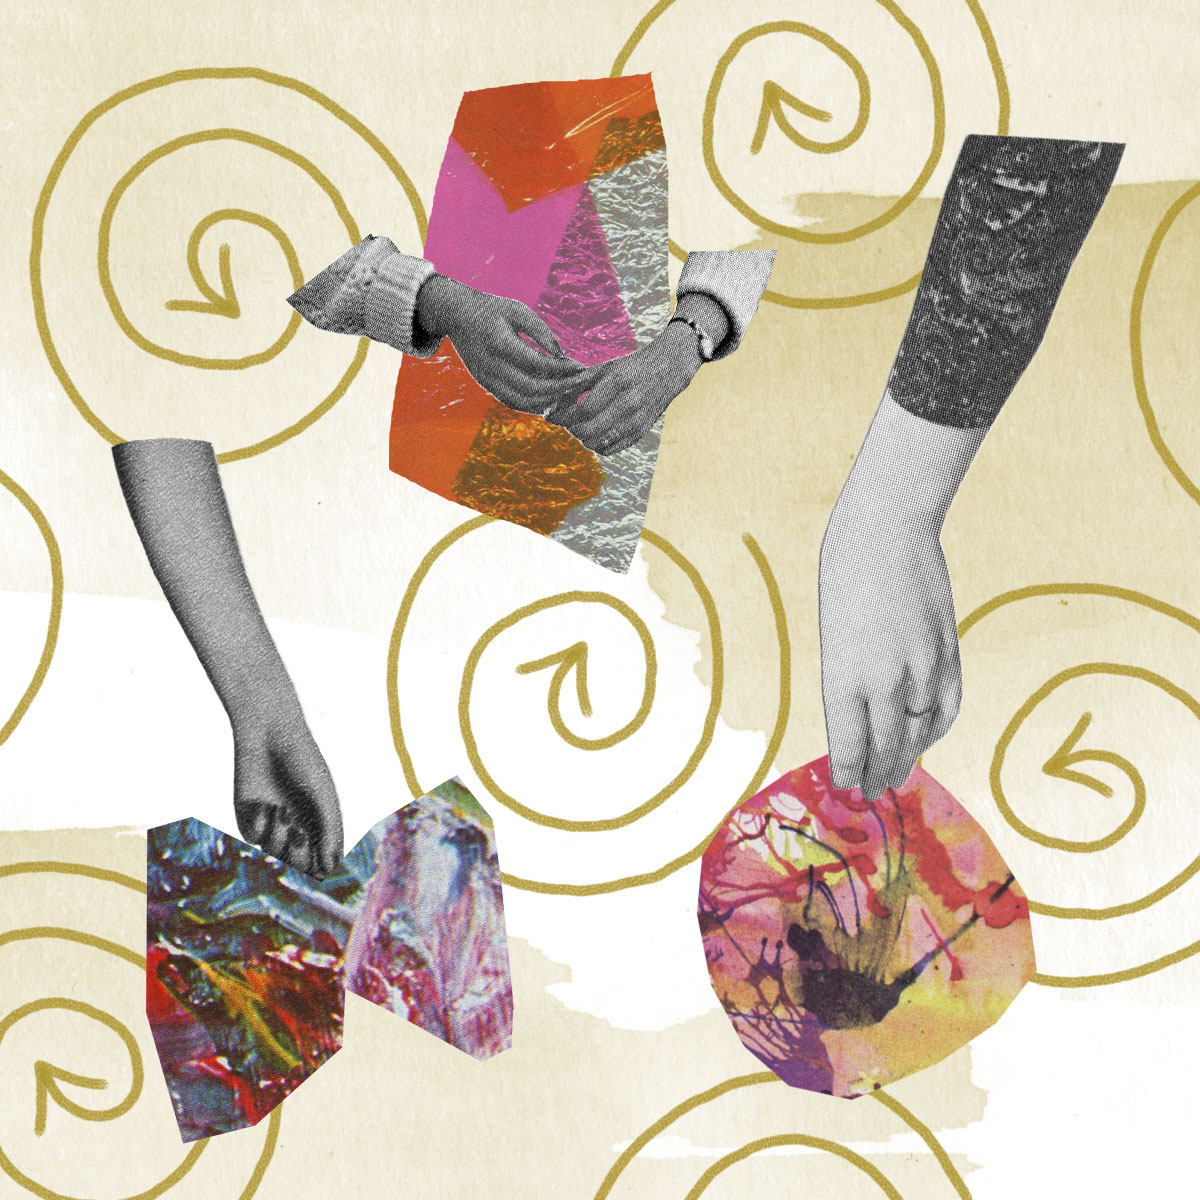 Collage with hands and swirls by Holly Leonardson